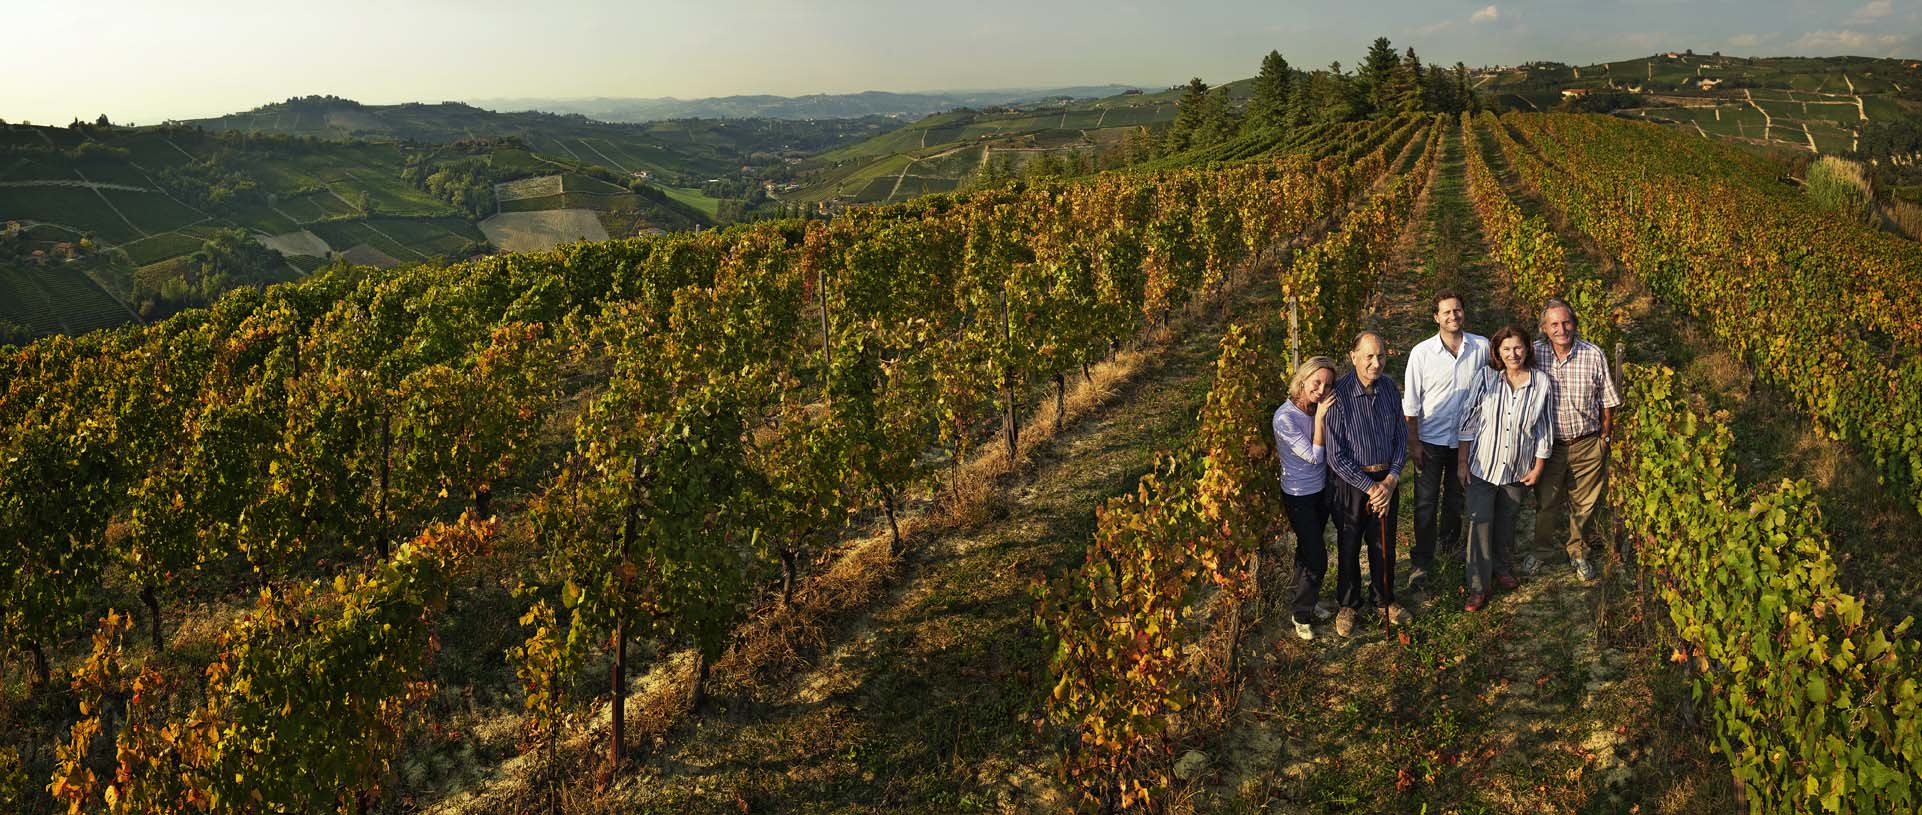 The Colla family stands in the Bricco del Drago vineyard. ©Poderi Colla